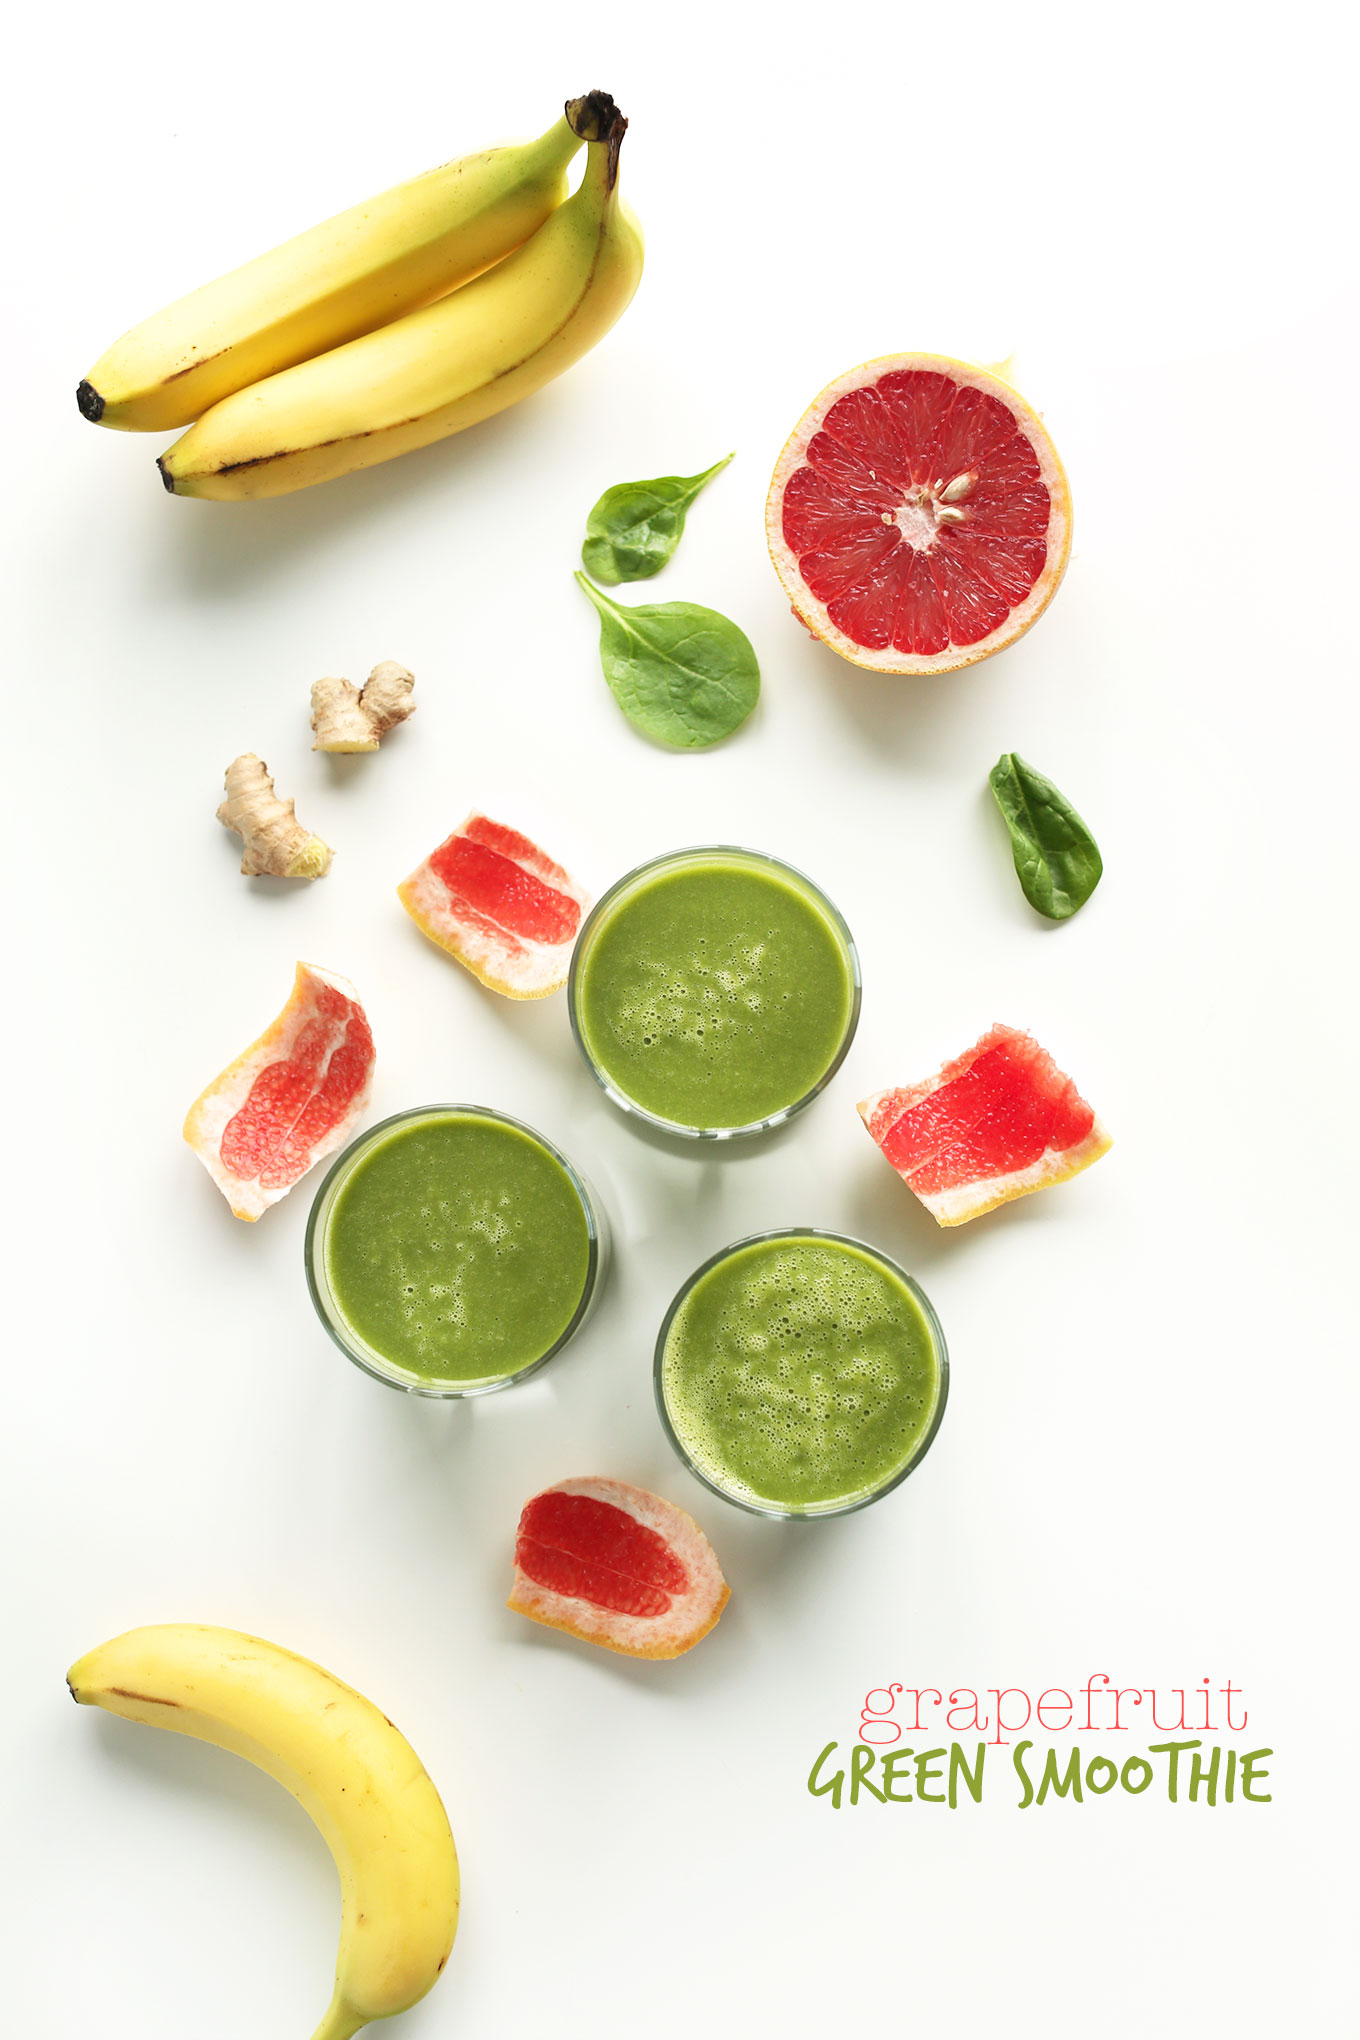 Grapefruit Green Smoothies surrounded by ginger, spinach, bananas, and grapefruit